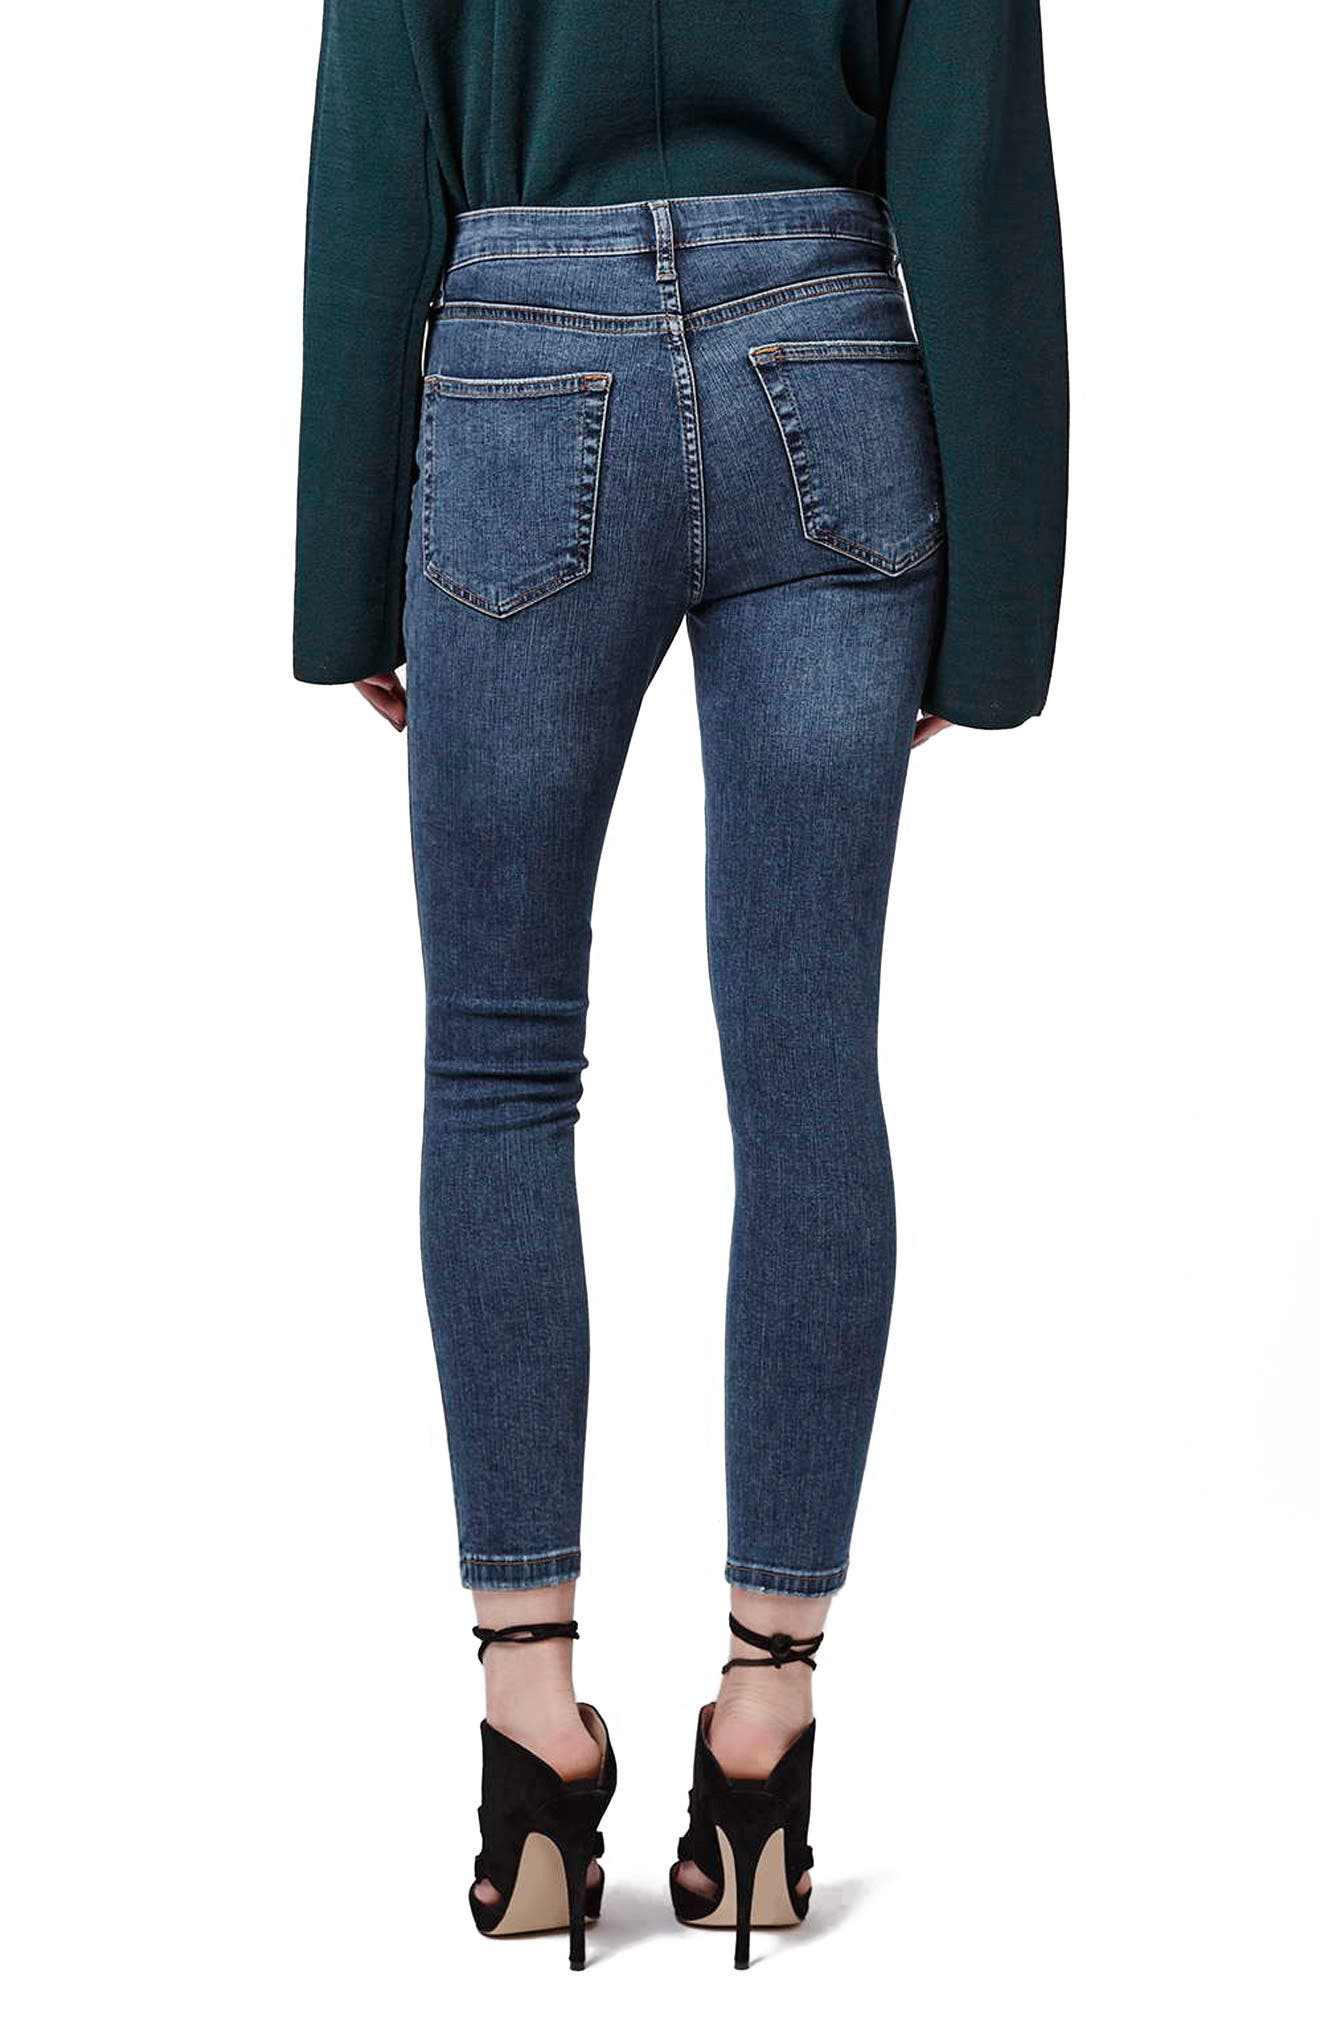 TOPSHOP, Moto 'Jamie' Ripped Skinny Ankle Jeans, Alternate thumbnail 10, color, MID DENIM